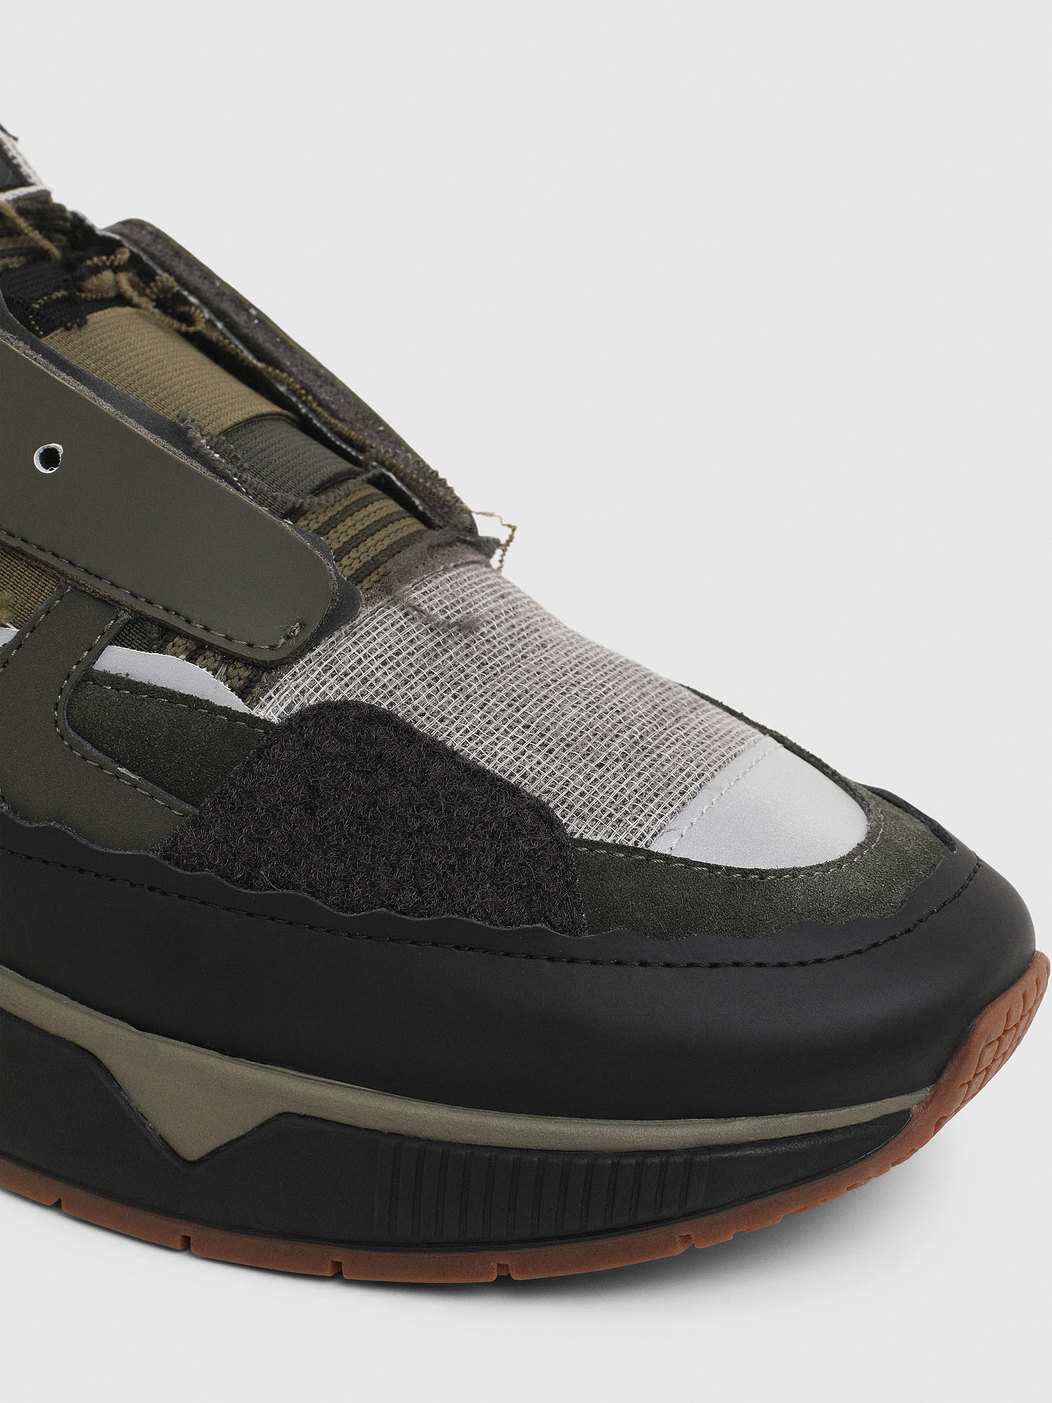 Slip-On Sneakers In Mix Materials